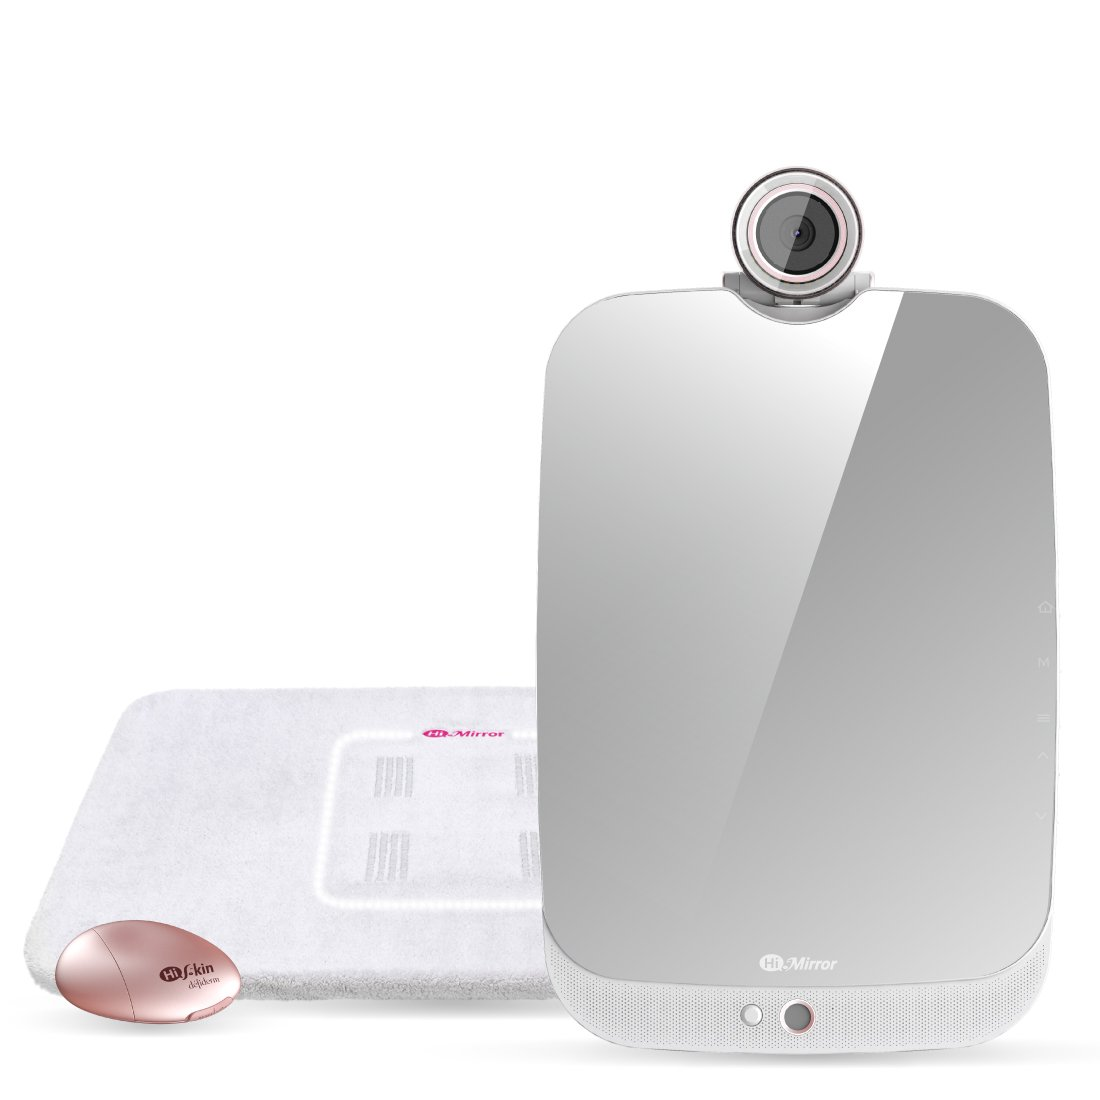 HiMirror bundle package - HiMirror, Smart Body Scale and HiSkin